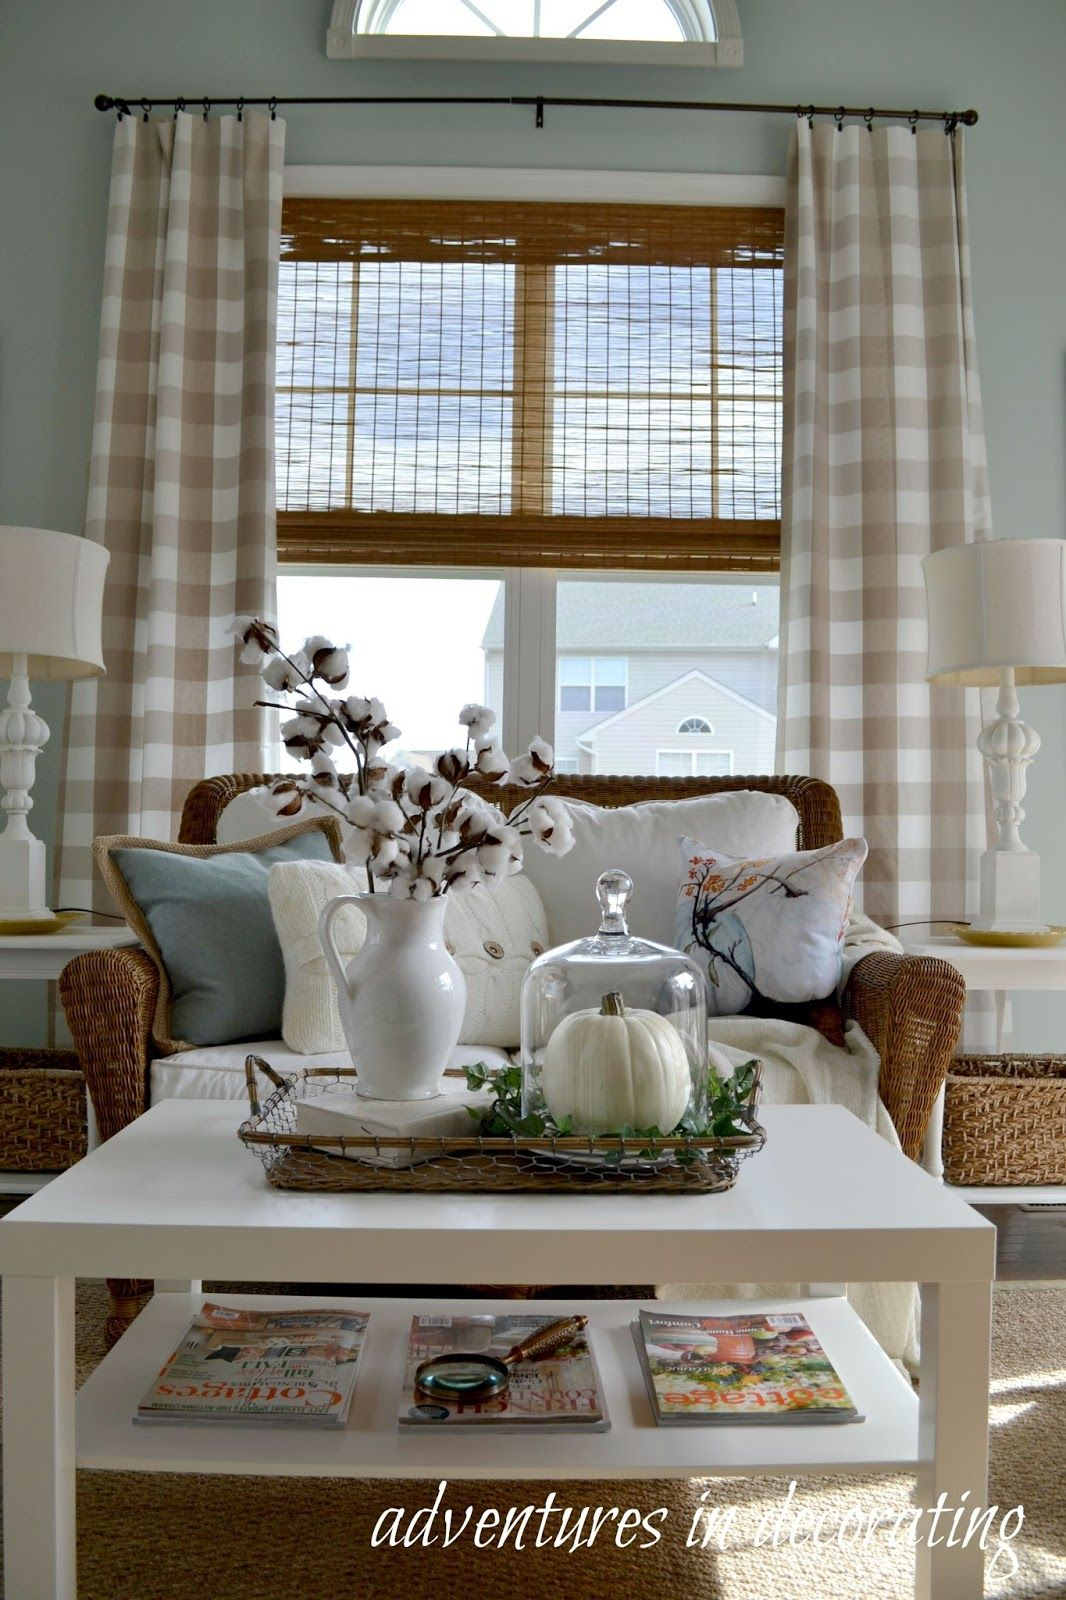 Love The Decor In This Room Especially Buffalo Check Curtains Adventures Decorating Our 2015 Fall Sunroom